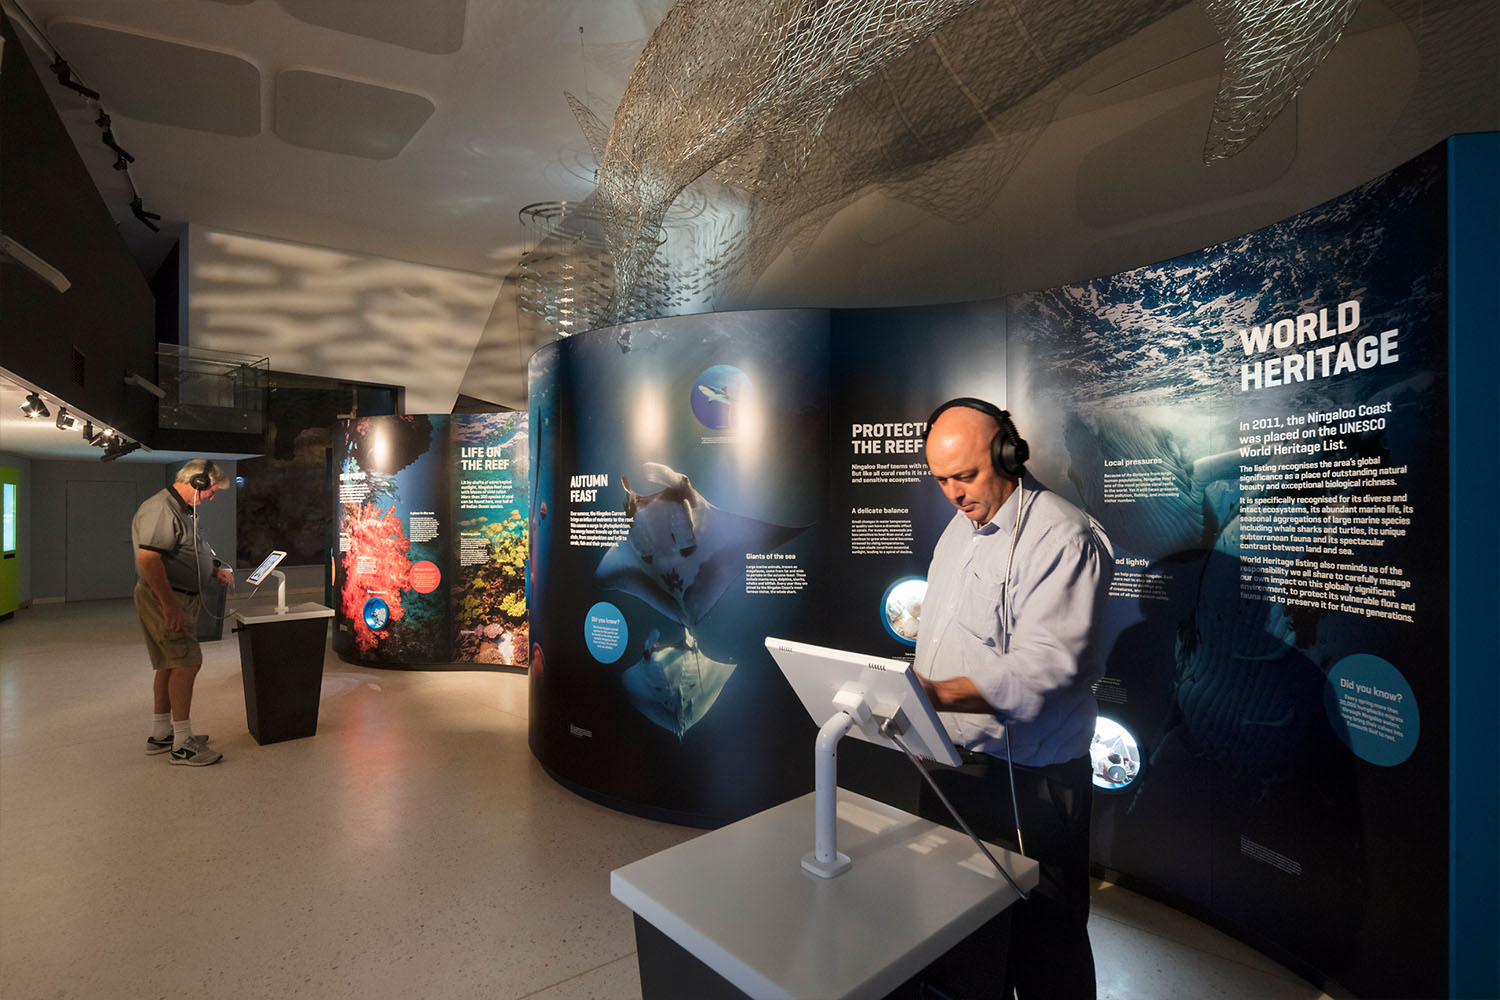 Marine artefacts, interactive video installations and multi-touch tables explore the complex yet fragile marine ecology of the region.